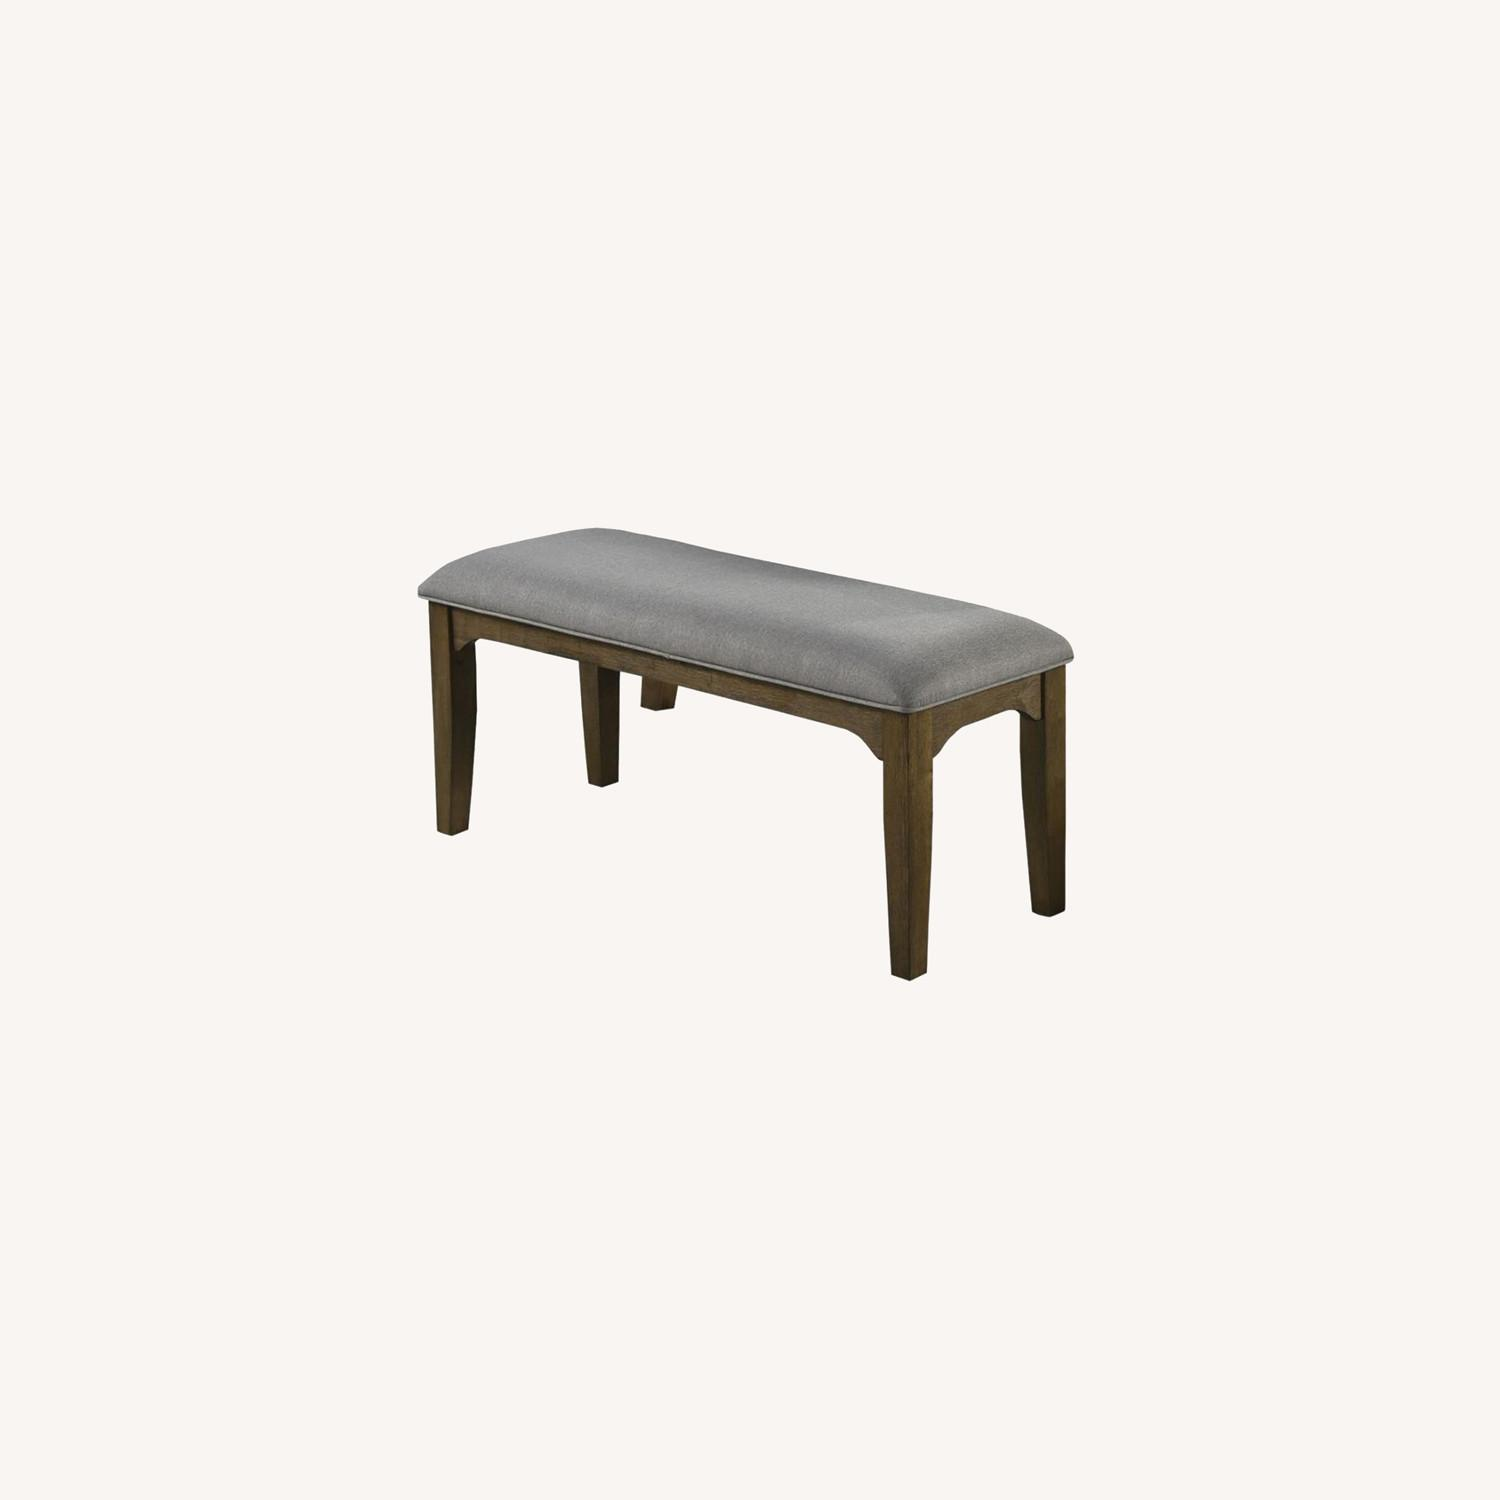 Bench In Asian Hardwood & Grey Fabric Upholstery - image-3